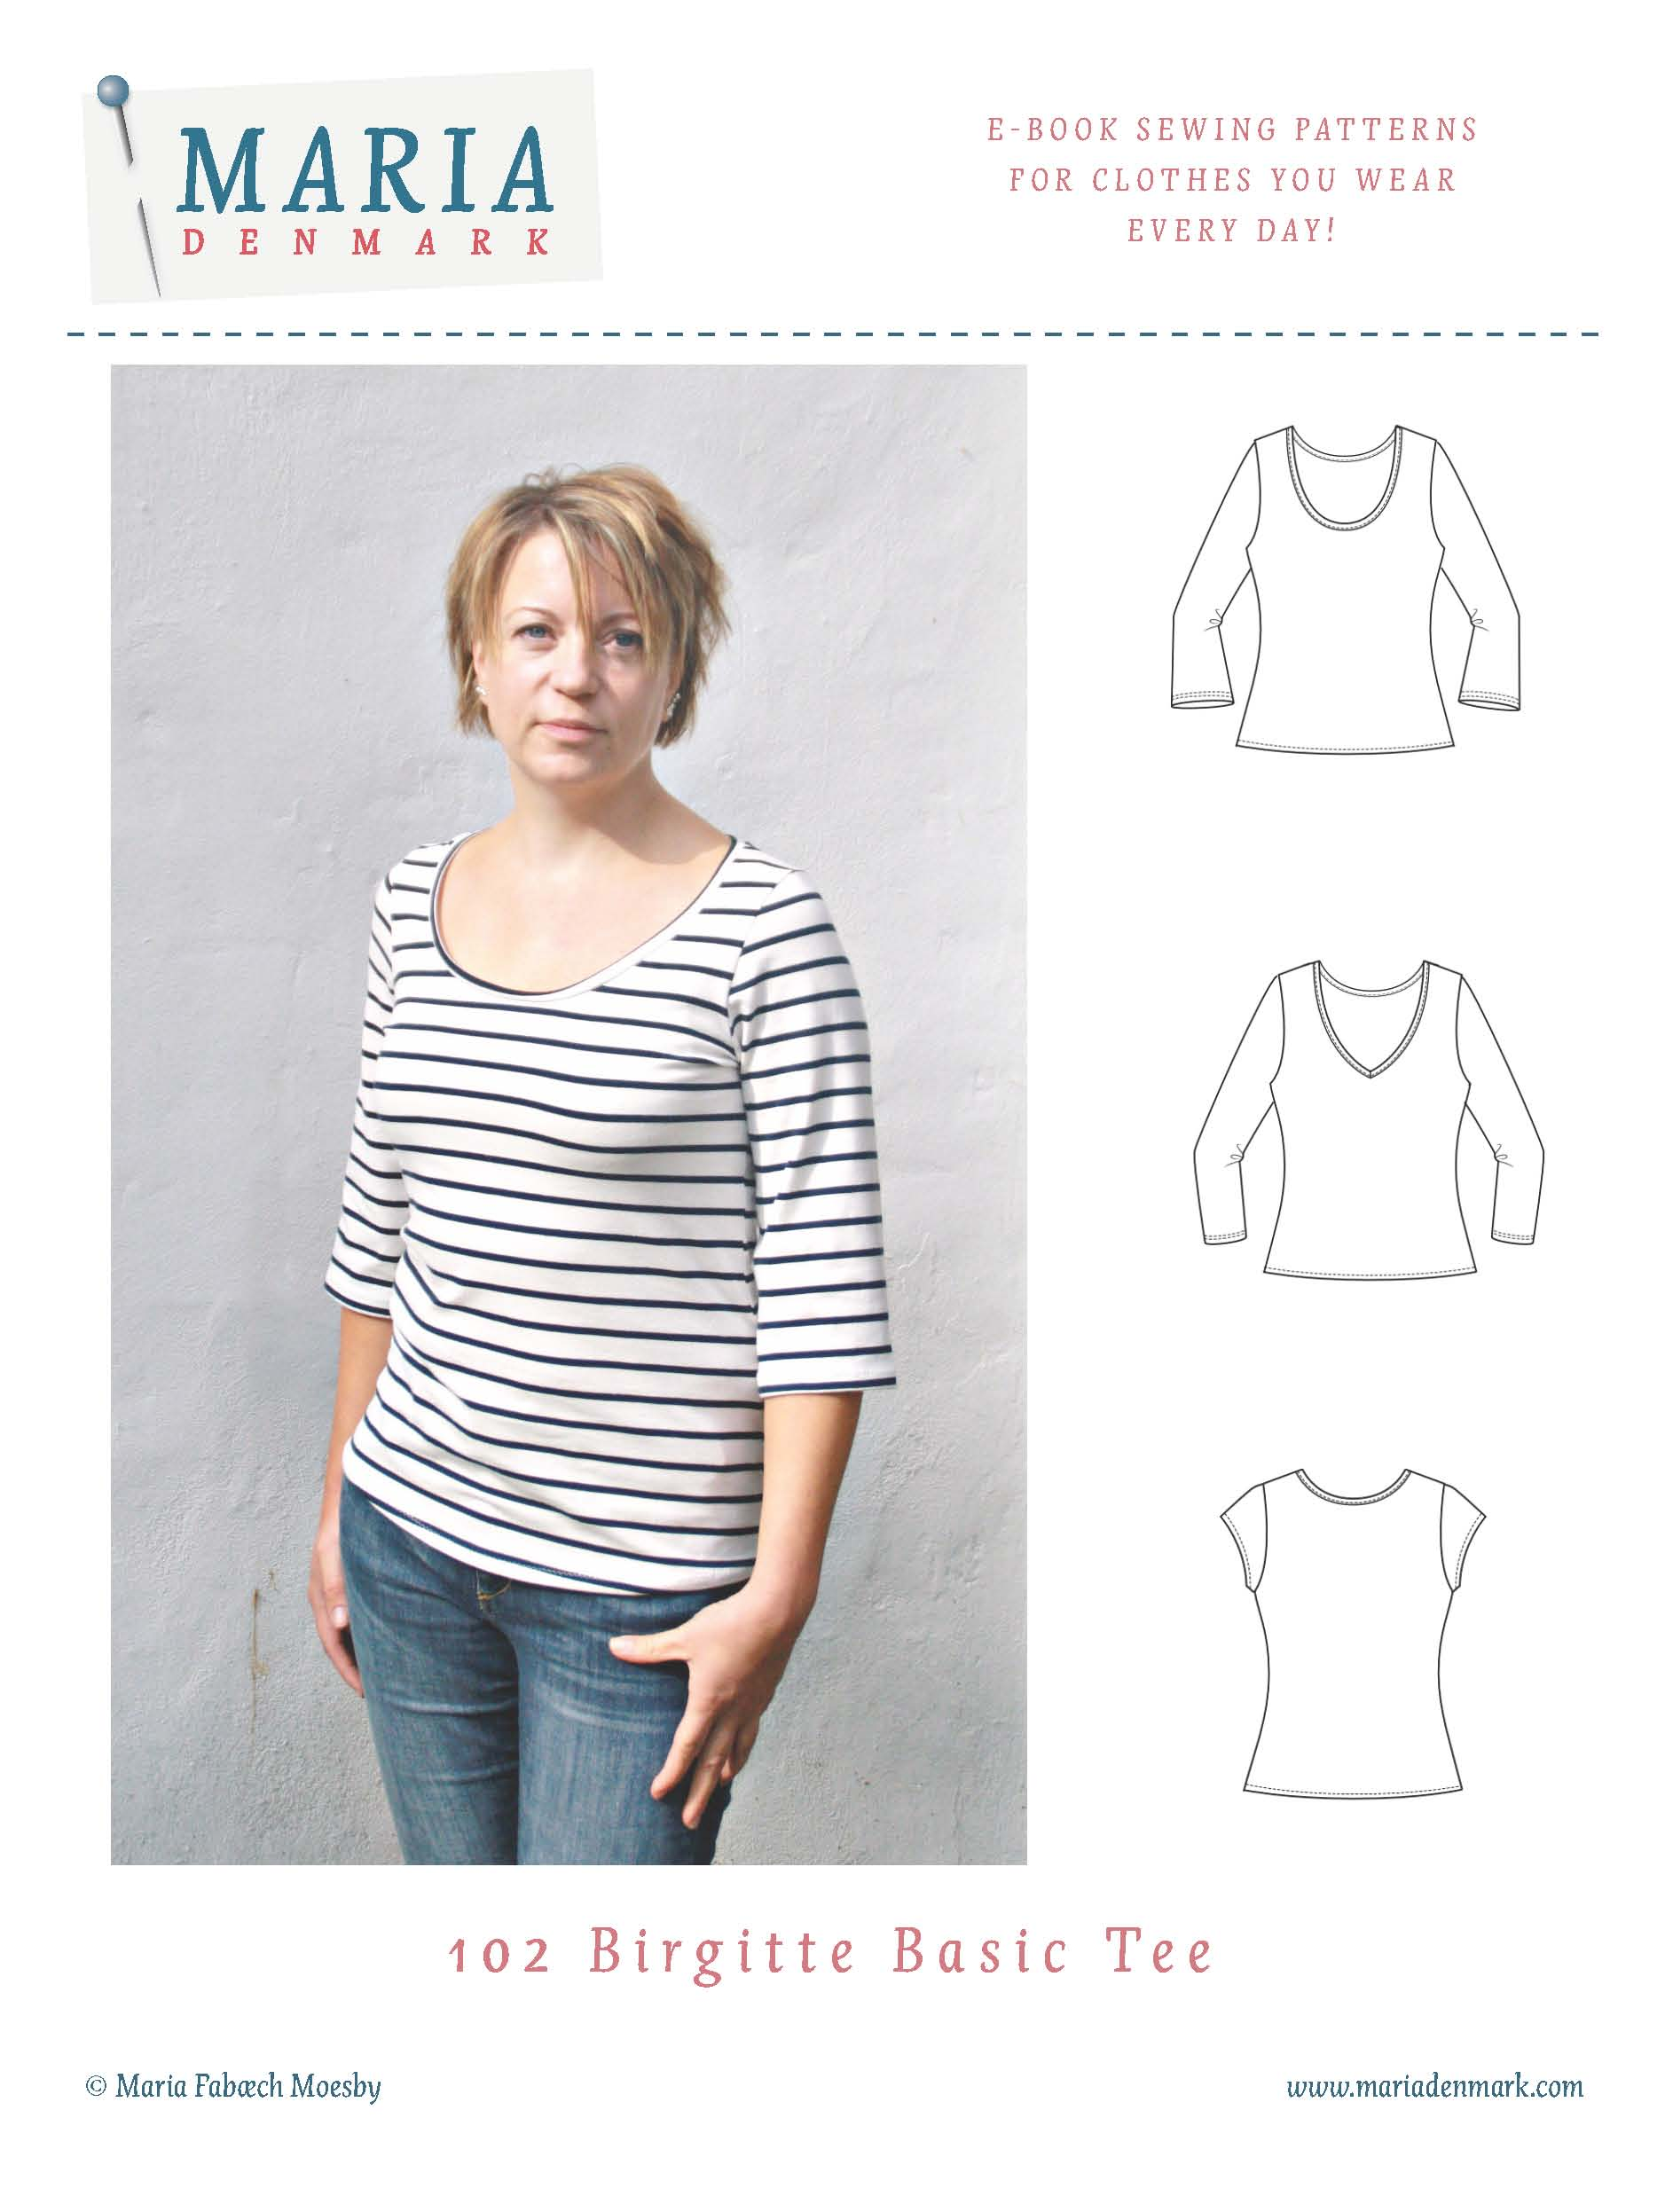 MariaDenmark Birgitte Basic Tee Downloadable Pattern 102